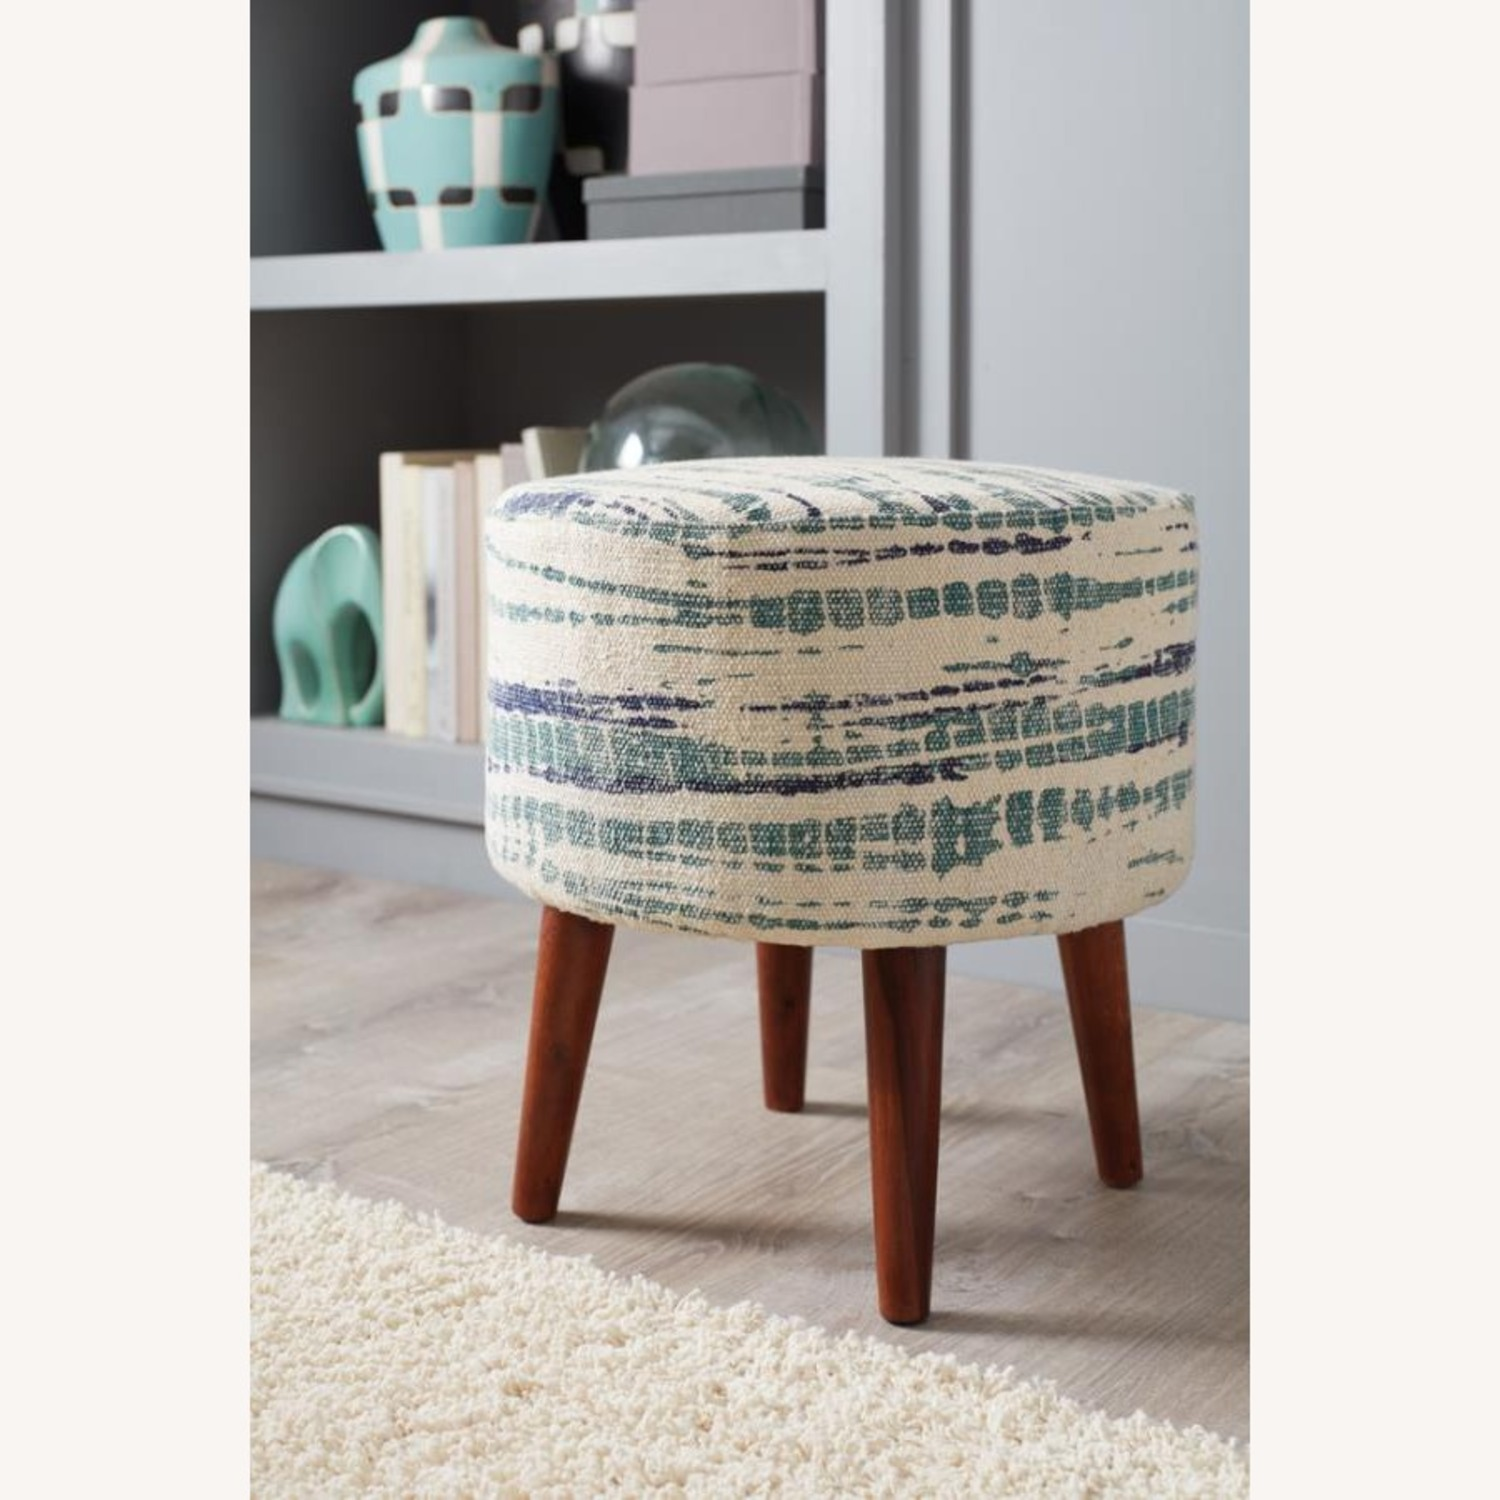 Accent Stool In Blue &White Patterned Woven Cotton - image-2